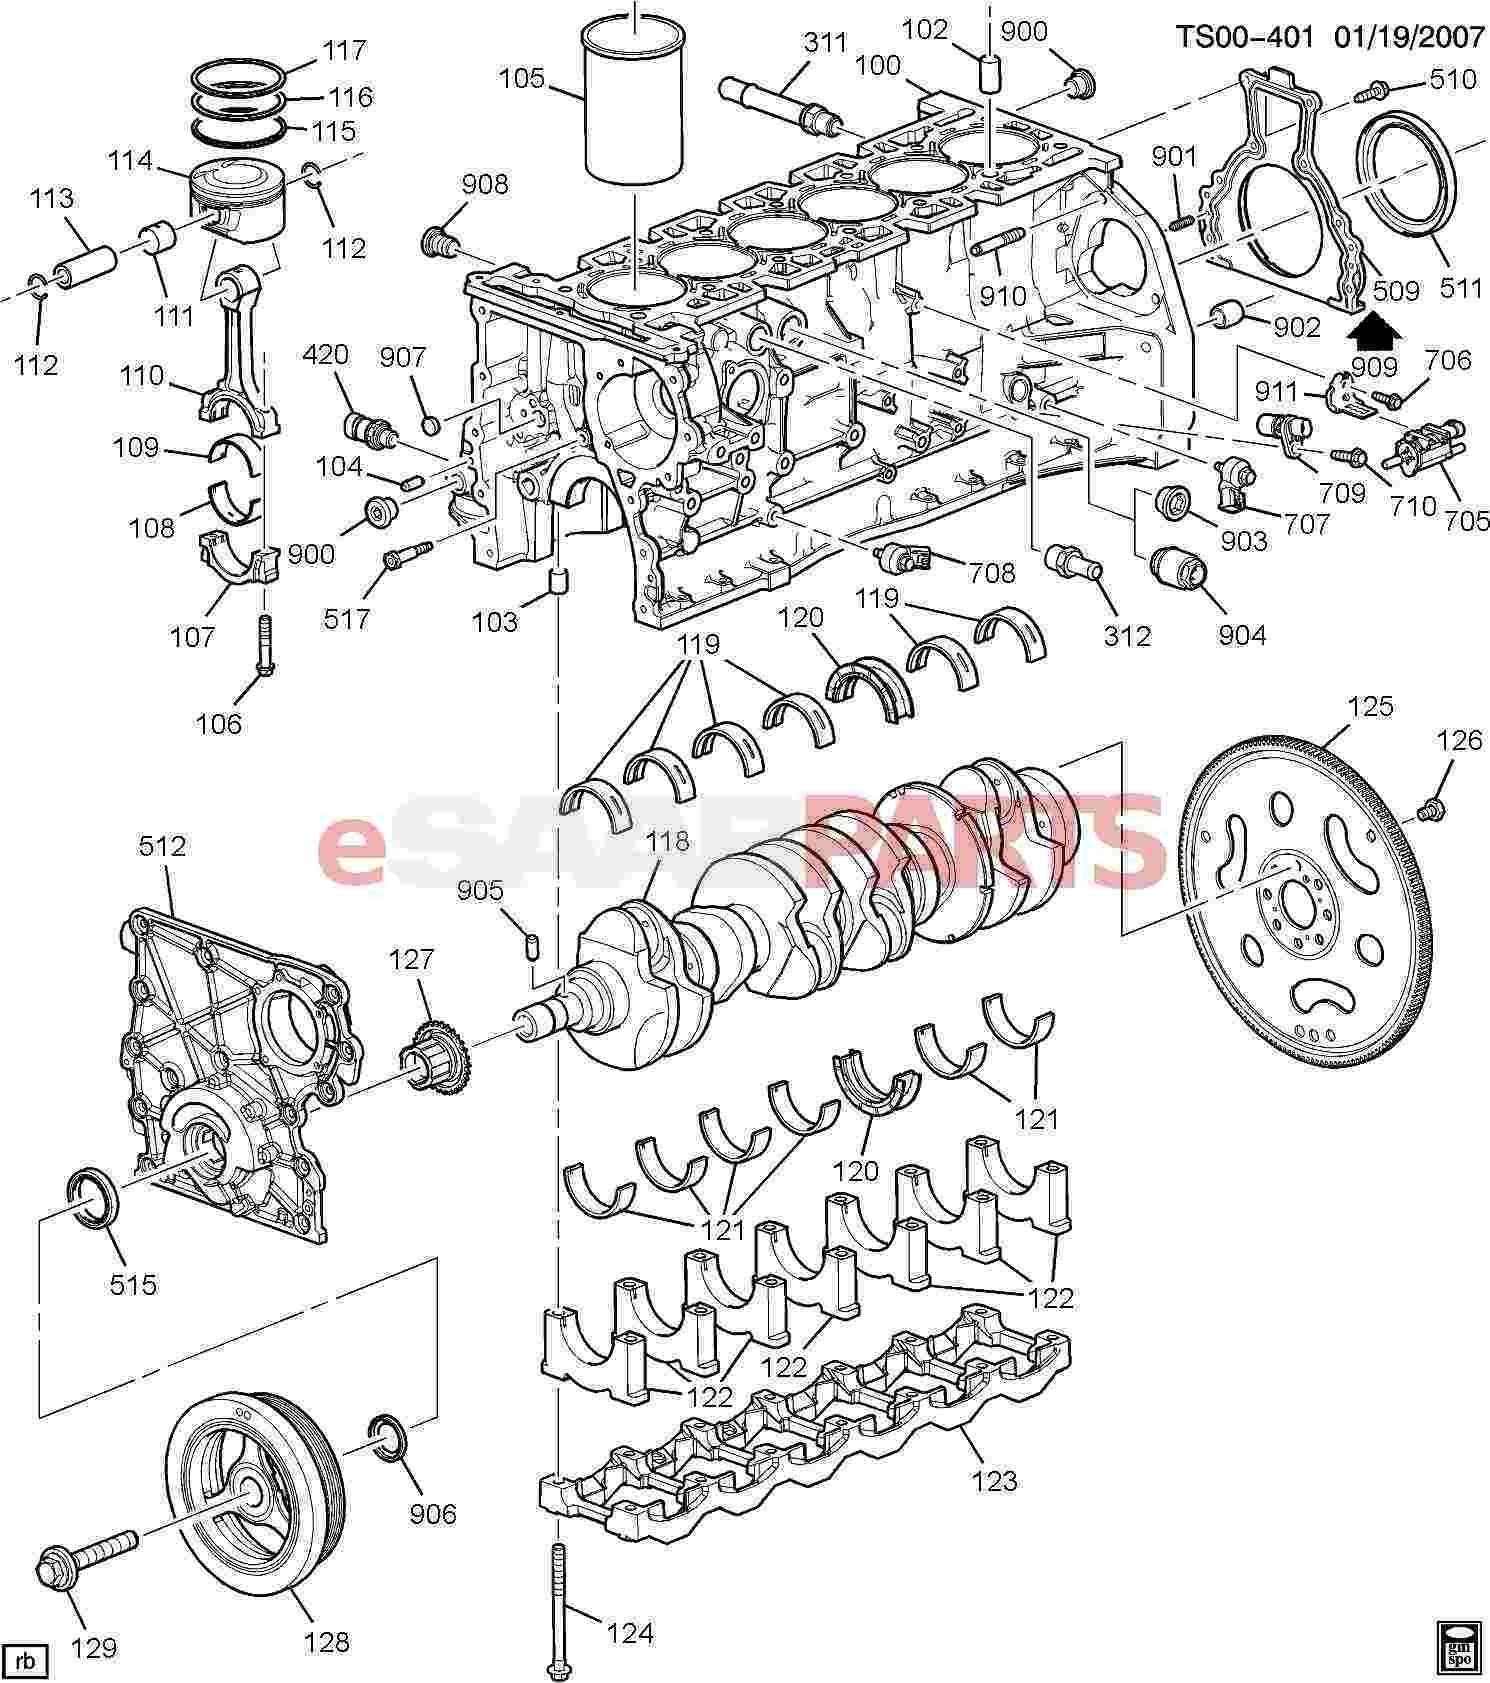 Magnificent Car Parts Name With Picture Ornament - Wiring Diagram ...